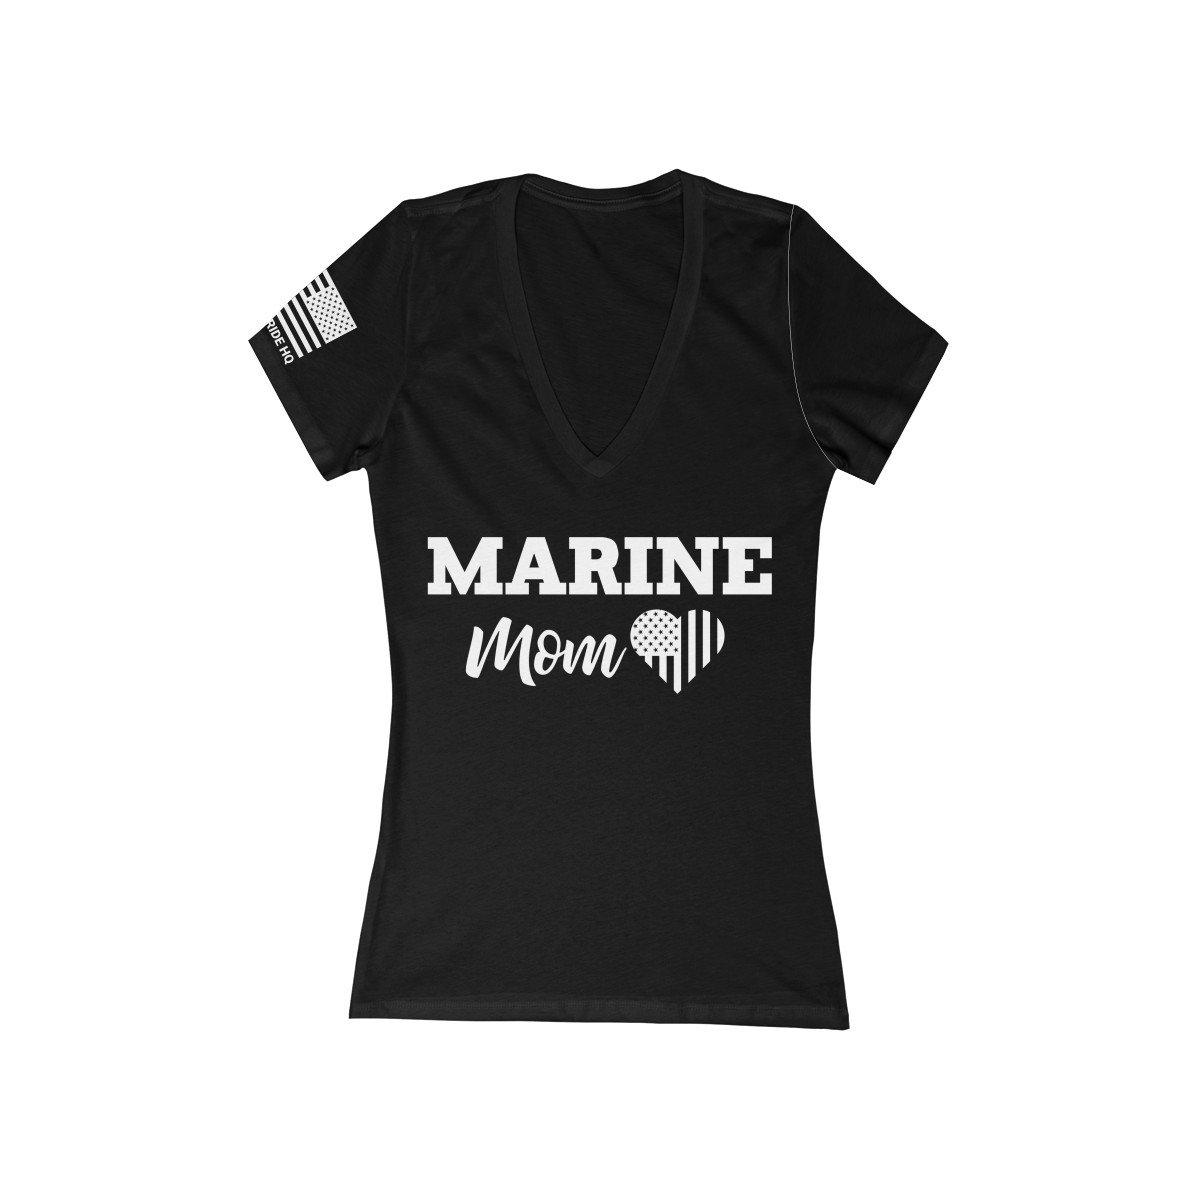 Marine Mom Women's V-Neck Tee